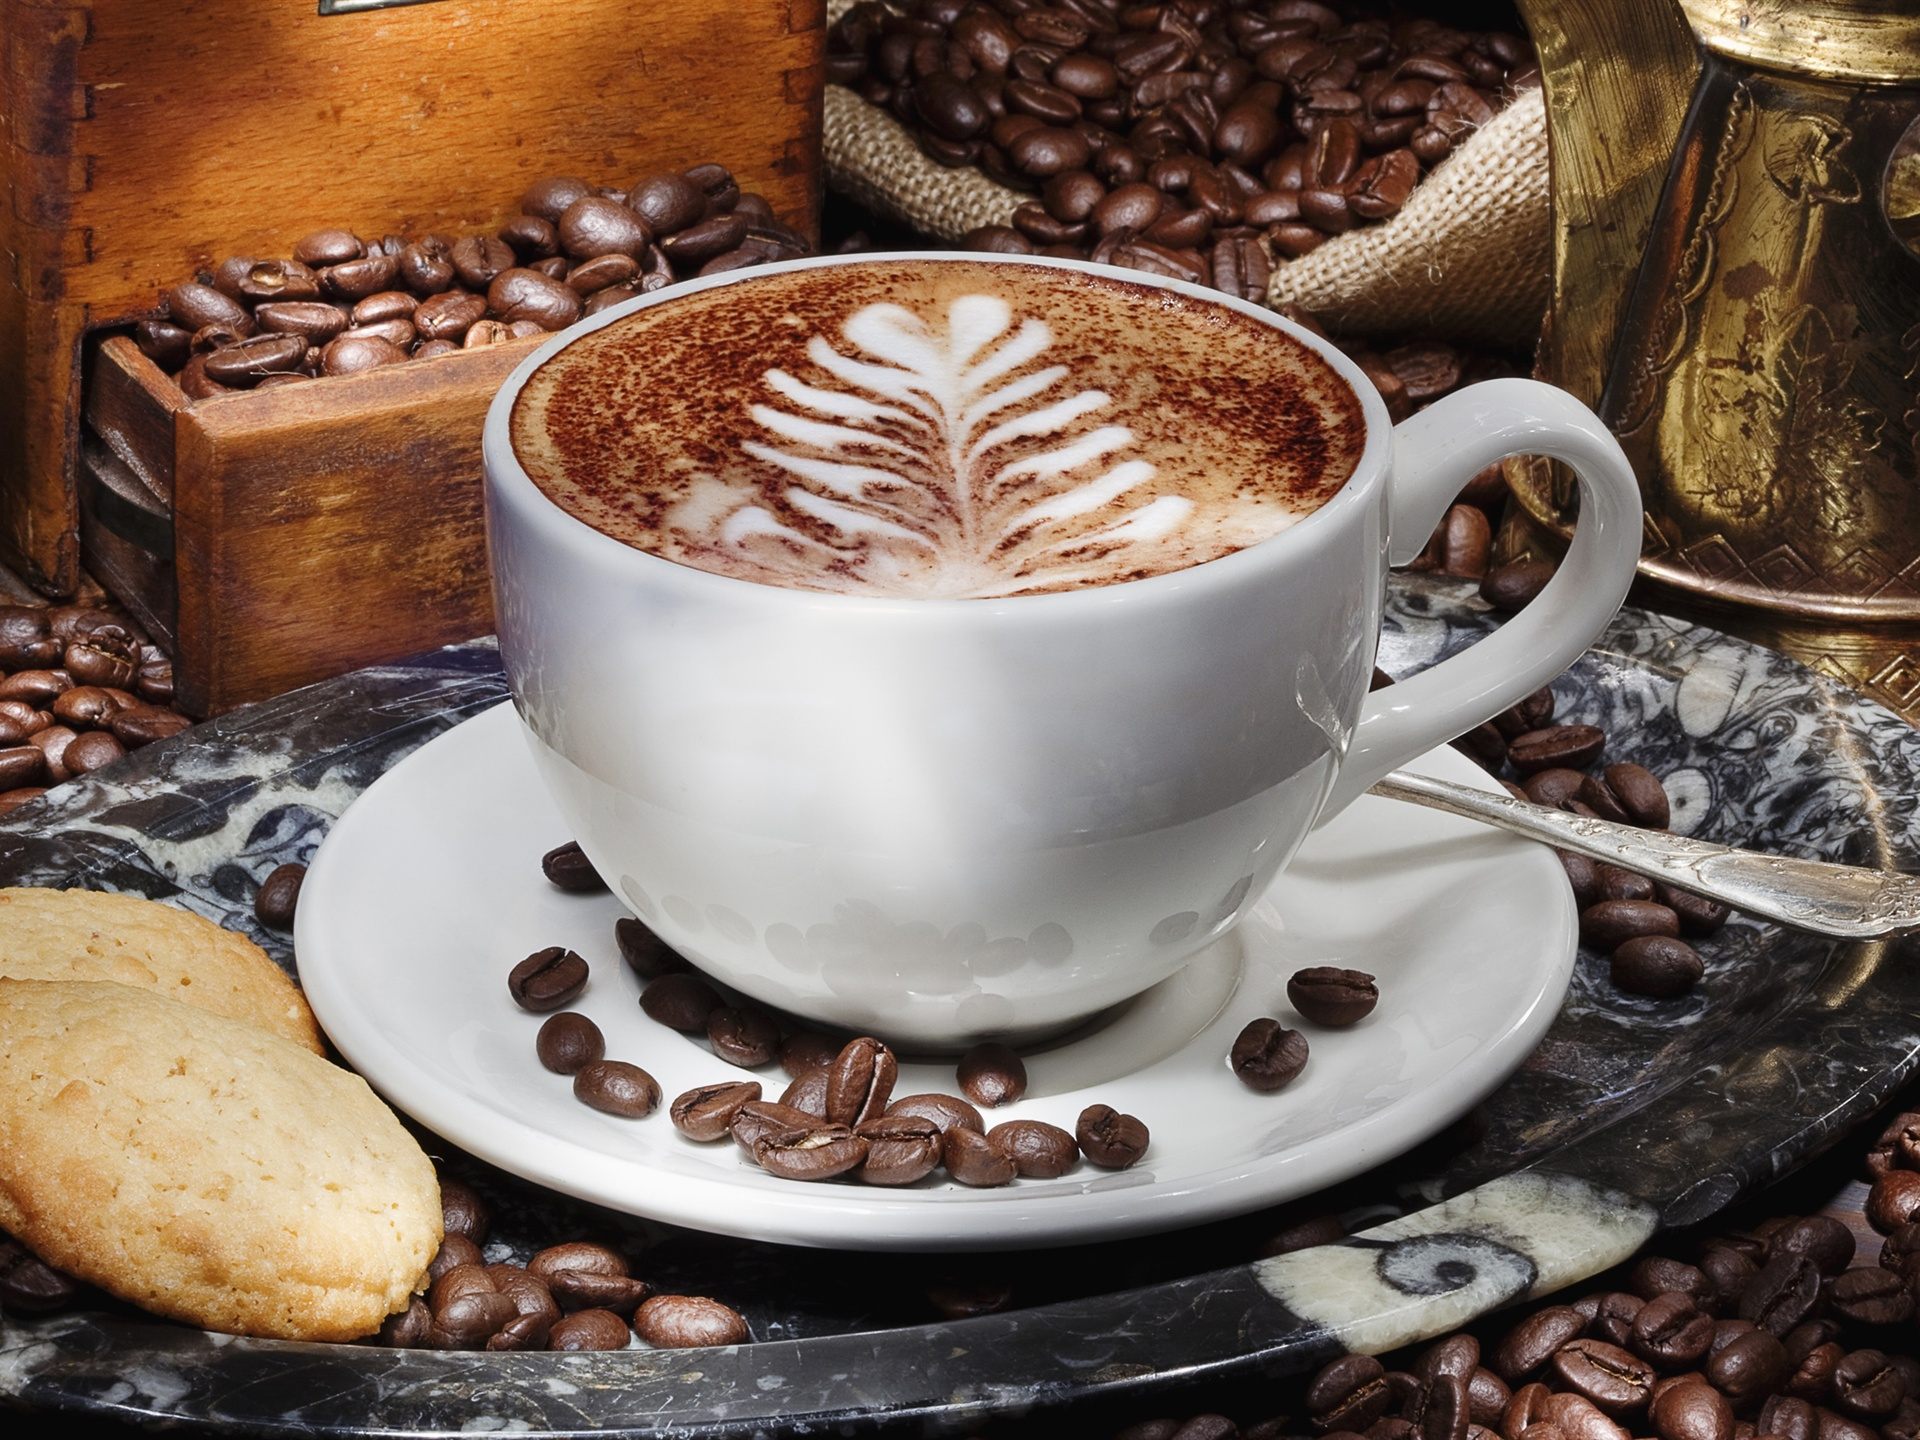 wallpaper a cup of cappuccino coffee saucer grain biscuits 2560x1600 hd picture image. Black Bedroom Furniture Sets. Home Design Ideas